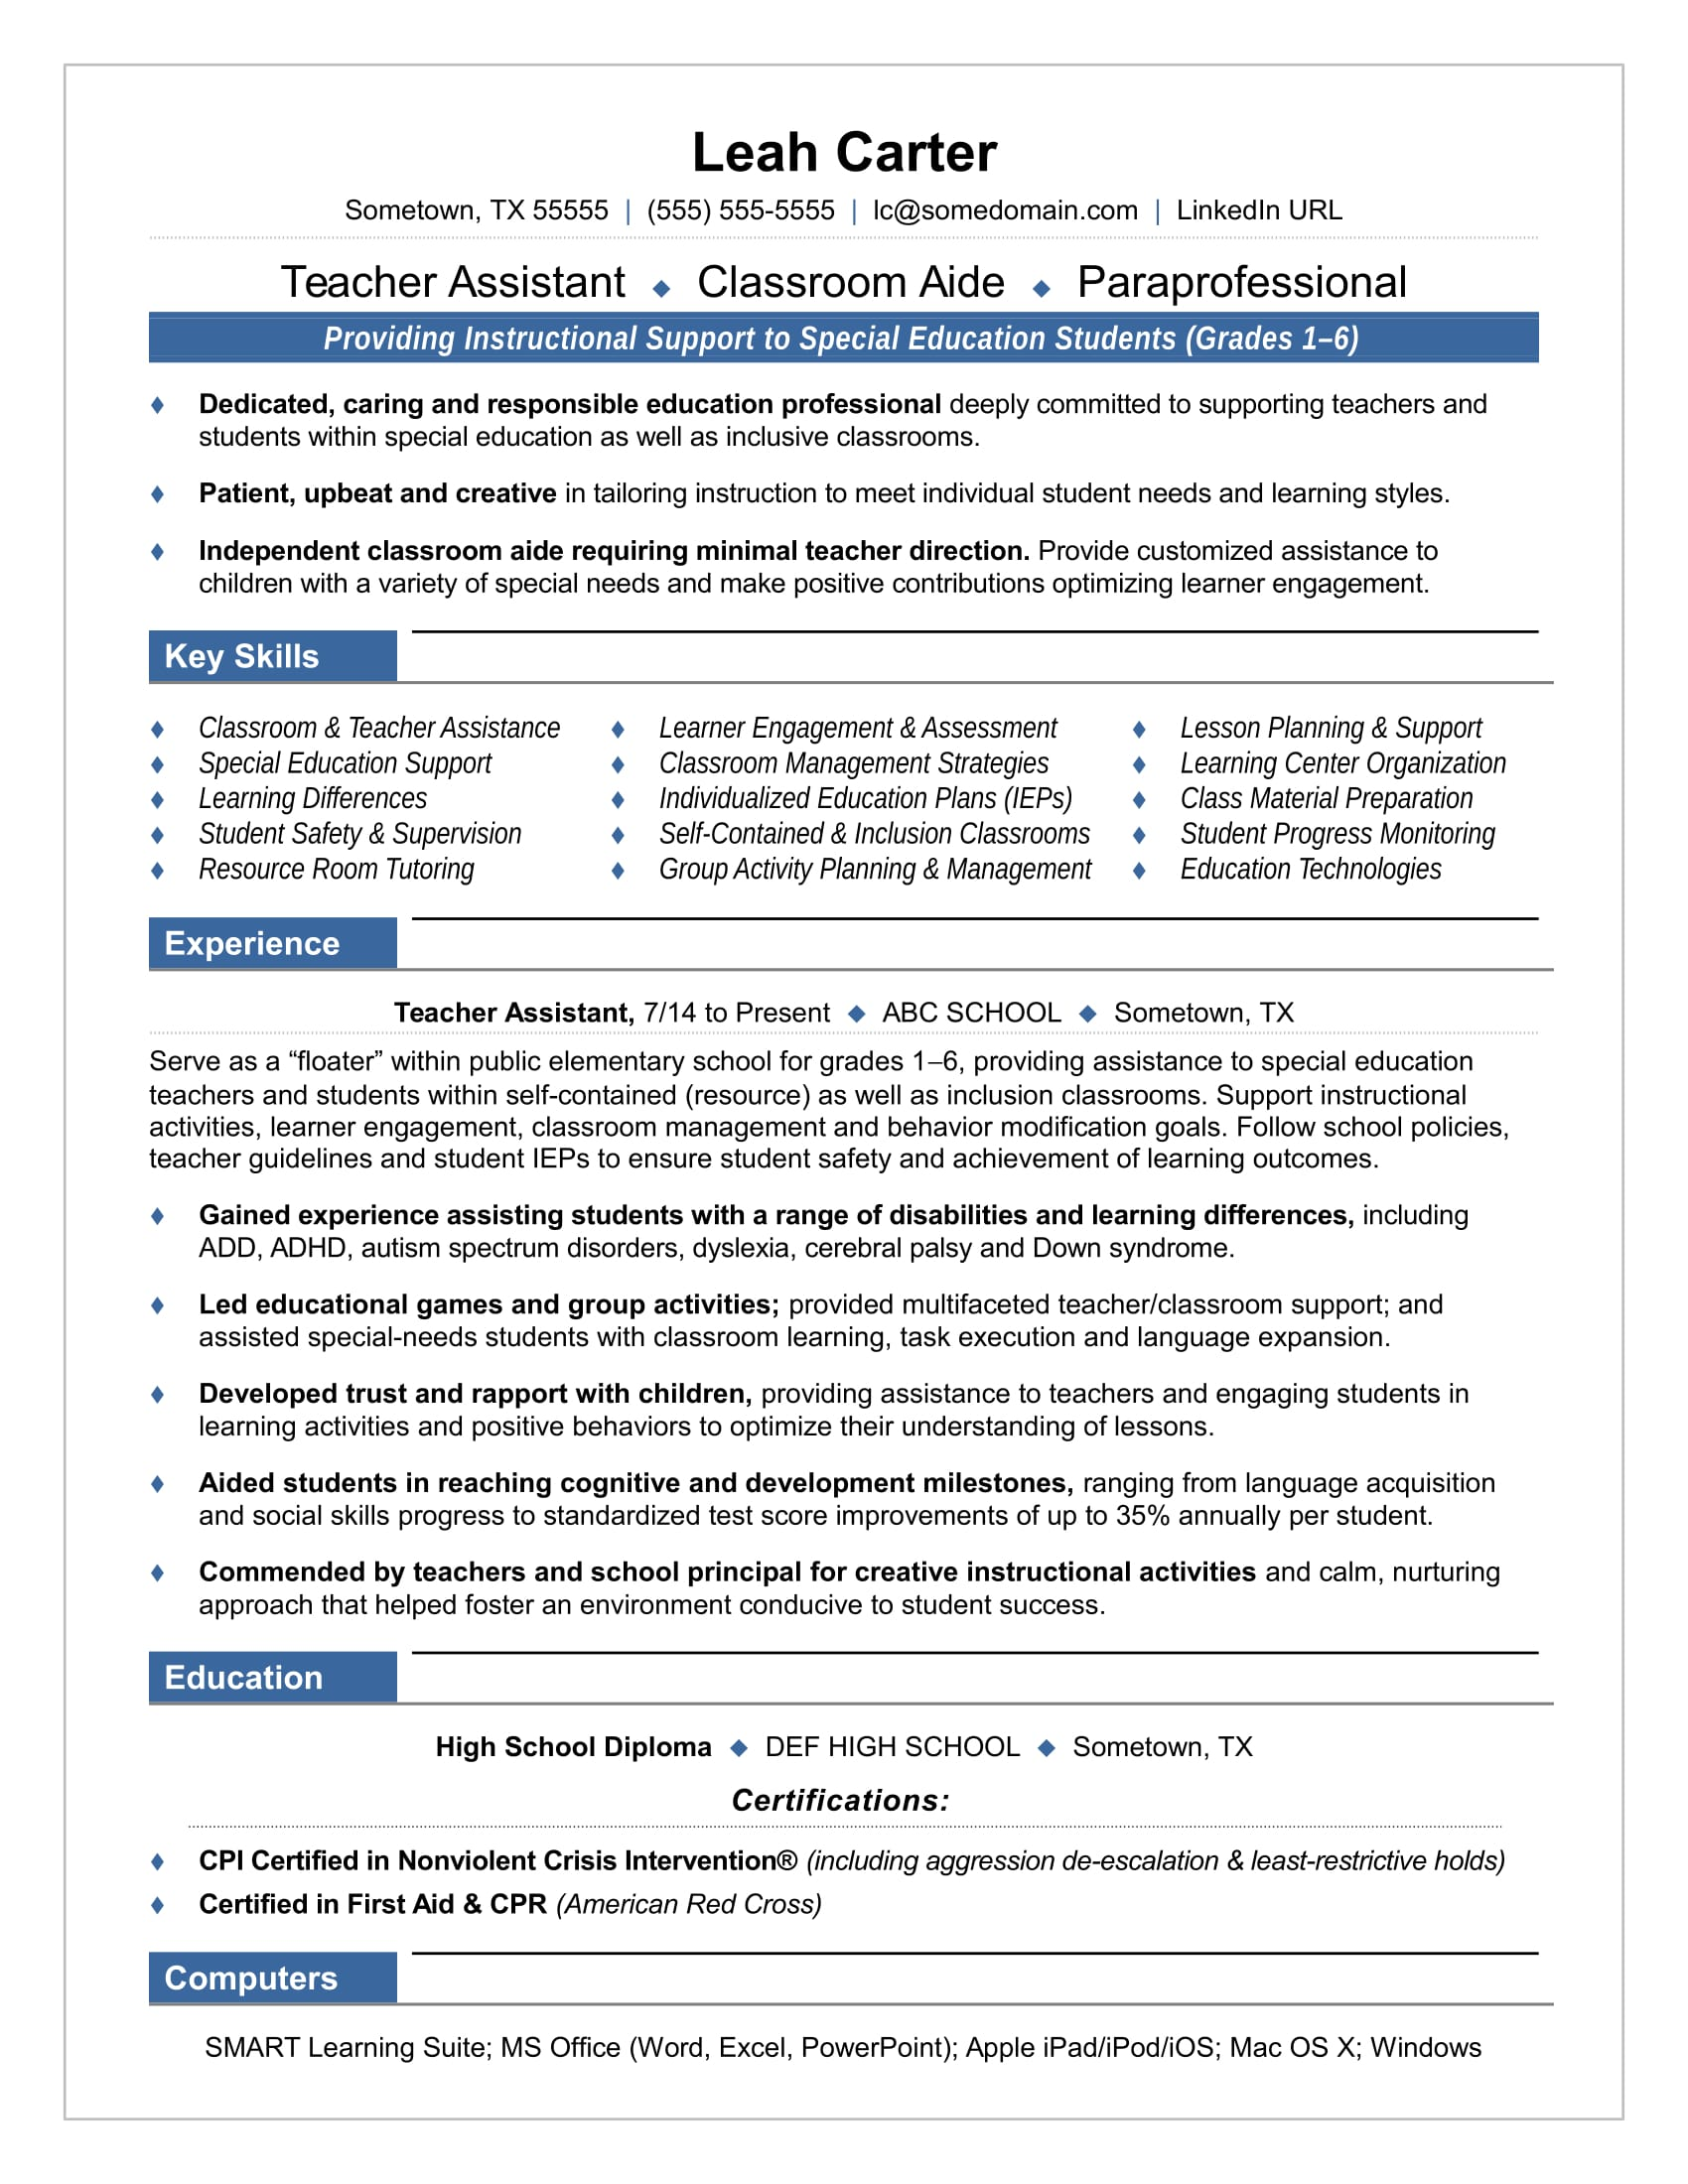 teacher assistant resume sample monster special education paraprofessional Resume Special Education Paraprofessional Resume